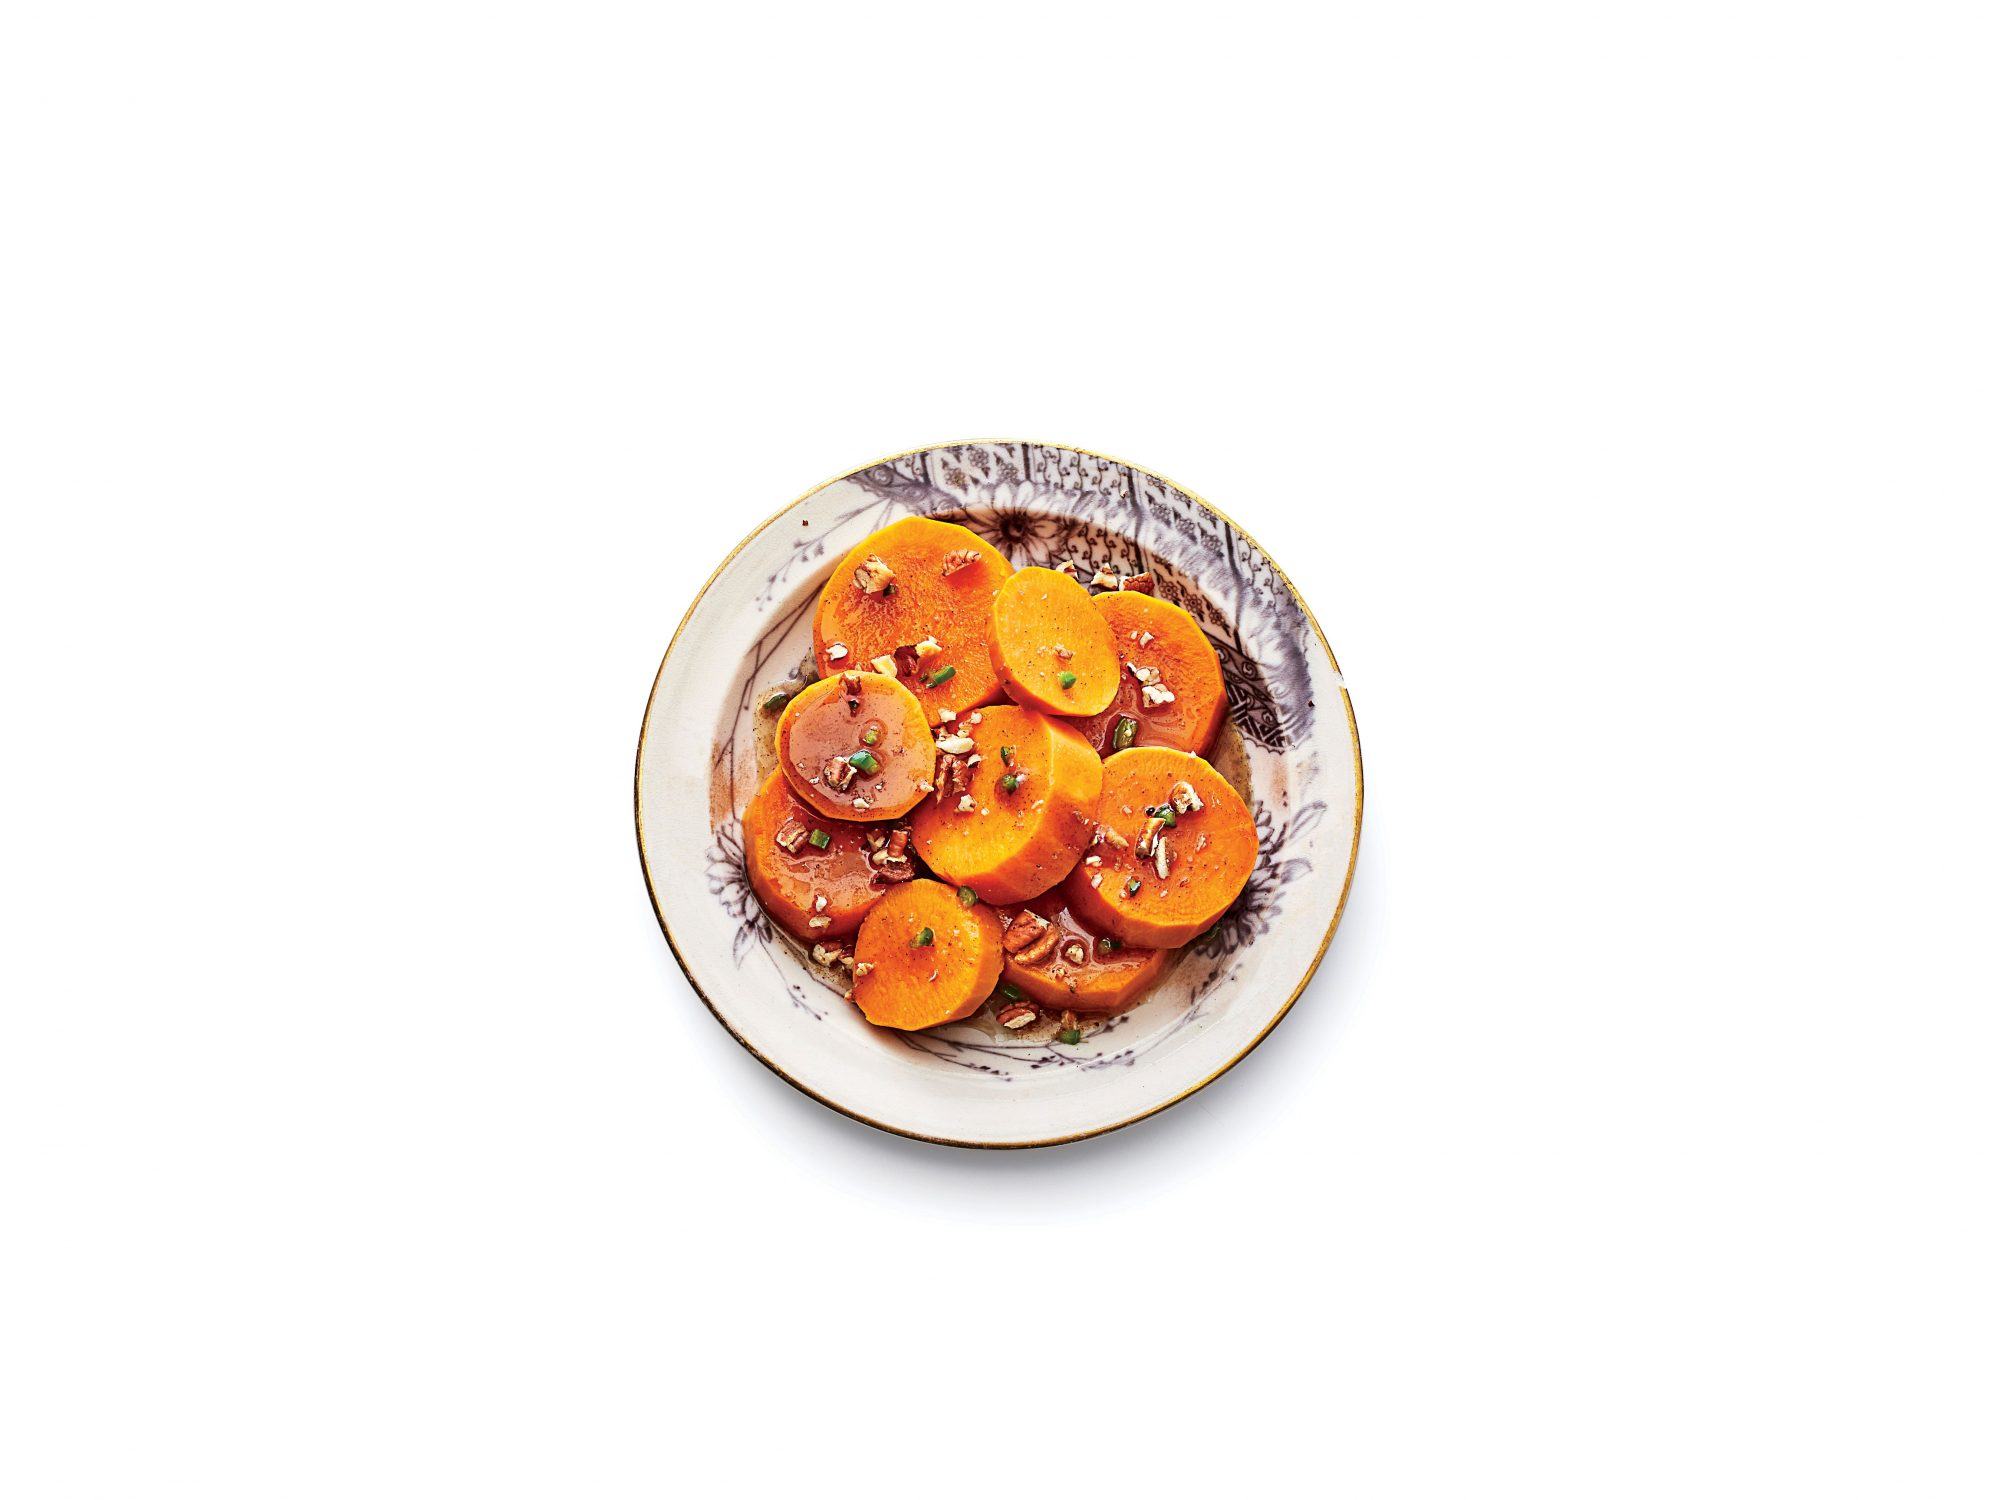 Spicy Candied Yams with Toasted Pecans Recipe Image